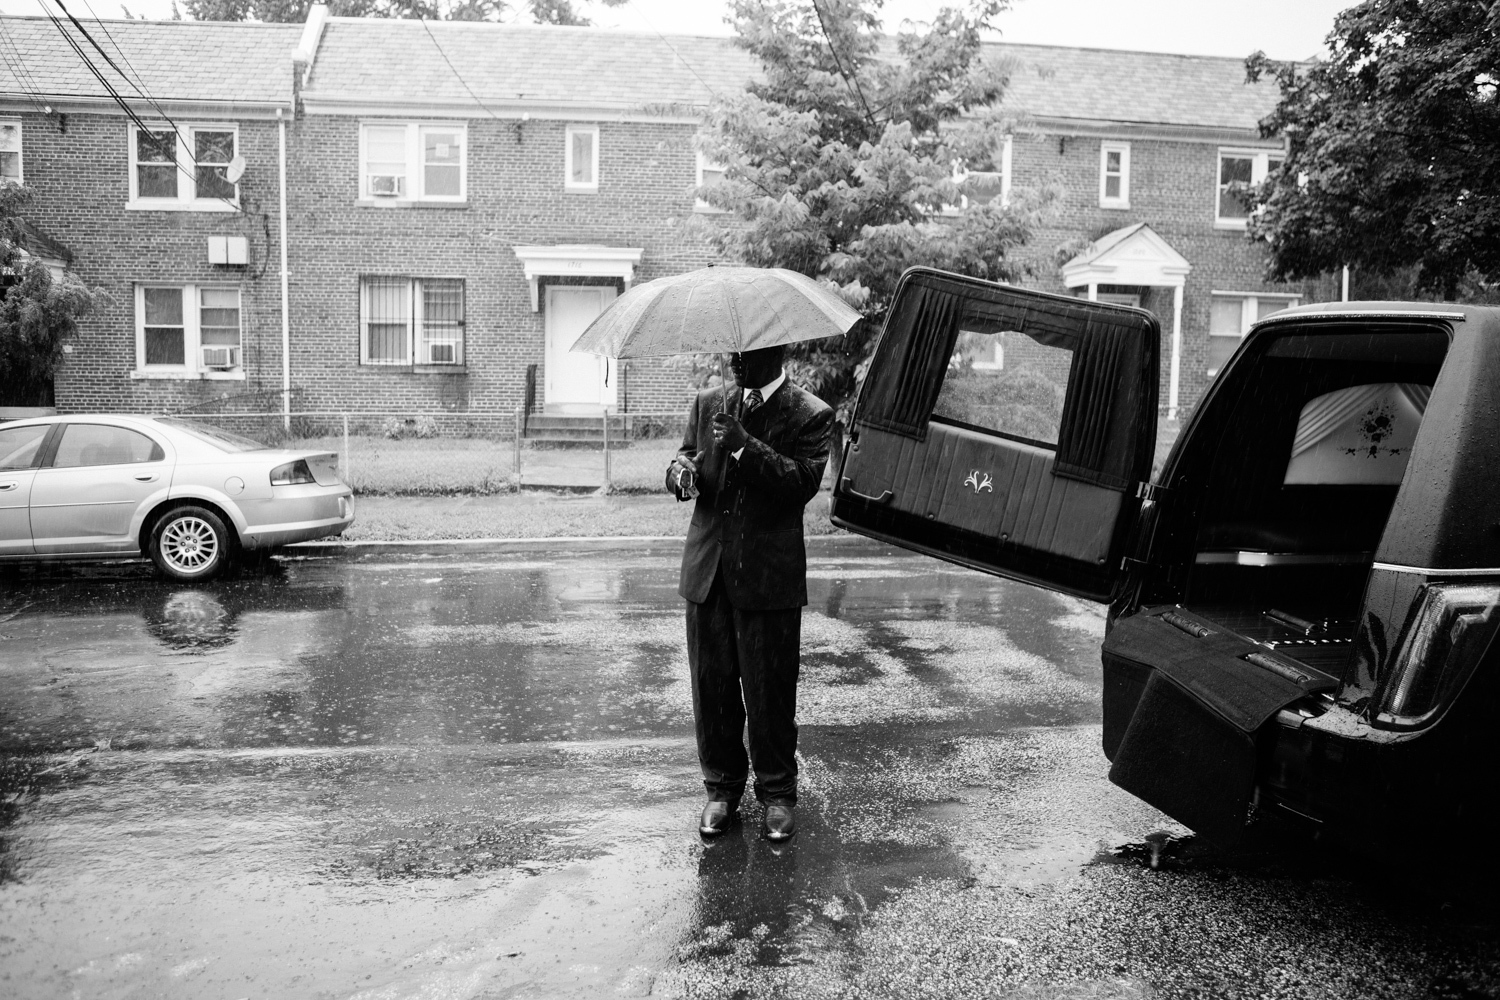 """A man waits in the rain during Milton Joseph Taylor's funeral July 28, 2017. Taylor, known as """"Skip King,"""" """"Frog Eyes,"""" and """"Froggy Eyes"""" was born in December 5, 1959 in Washington, D.C. He passed away in July 13, 2017 and was a Barry Farm resident. """"He gave ten years back to me,"""" says former Barry Farm resident Charles. Taylor represented incarcerated people and was a well-known leader and friend in the Barry Farm community."""